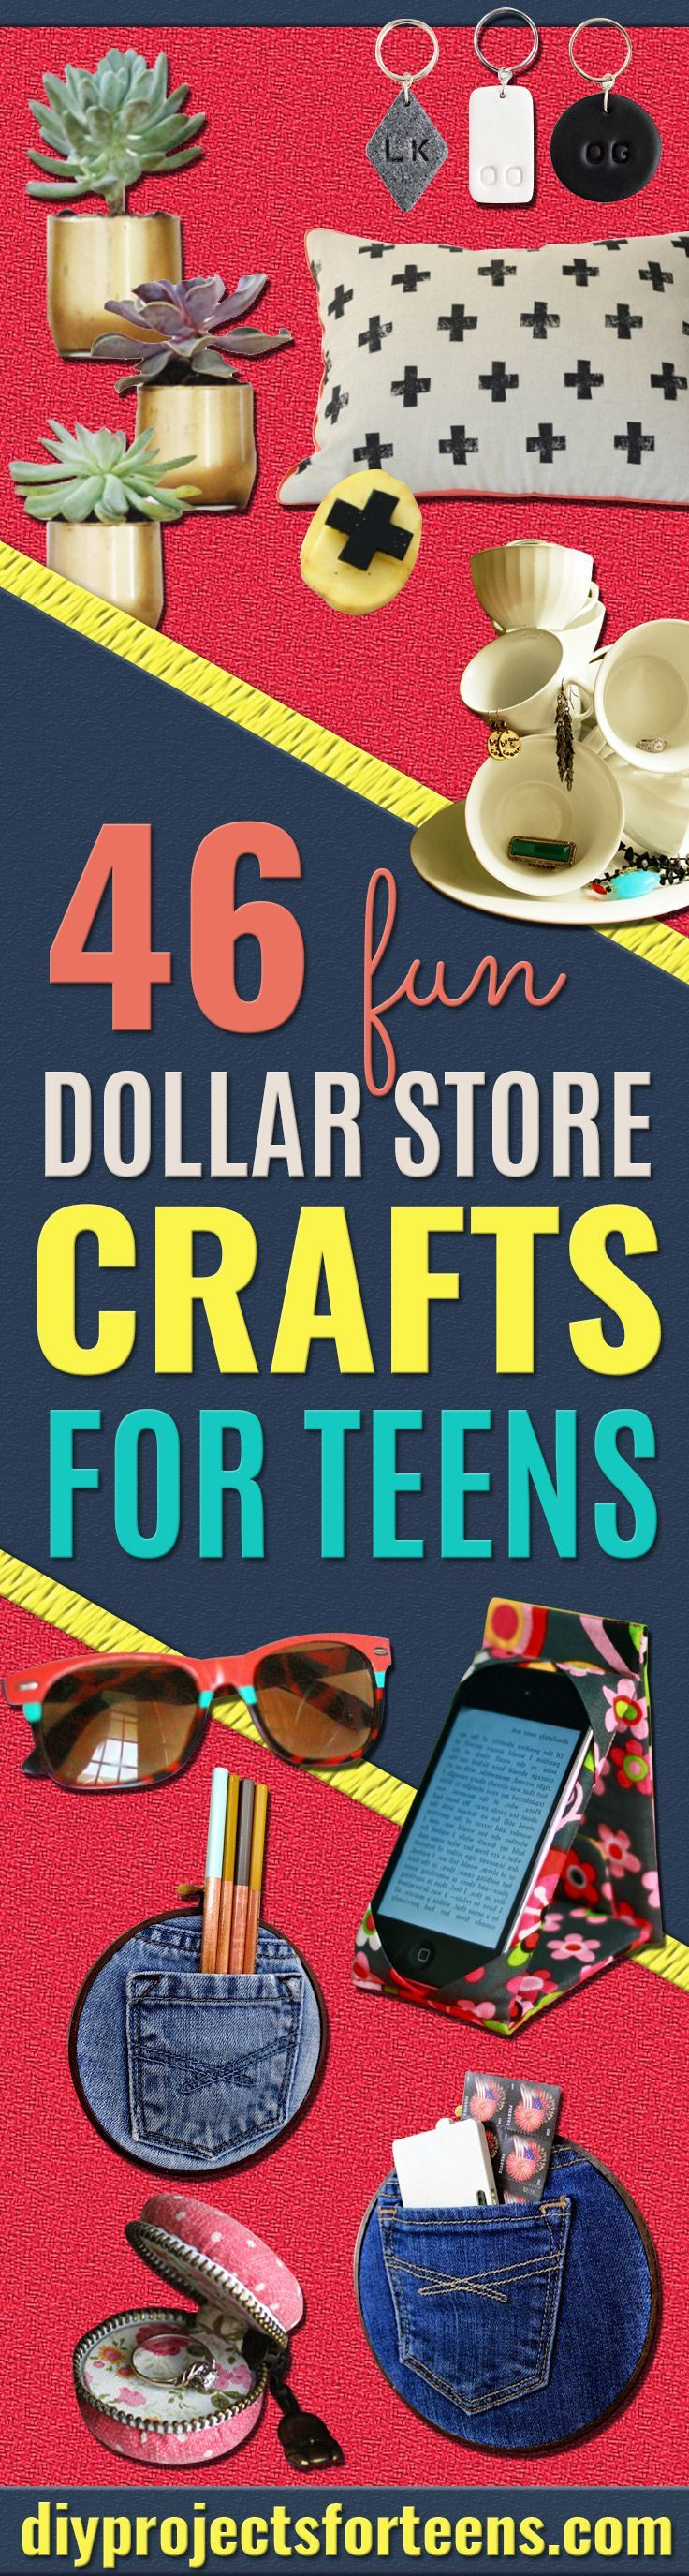 Fun Dollar Store Crafts for Teens 3112